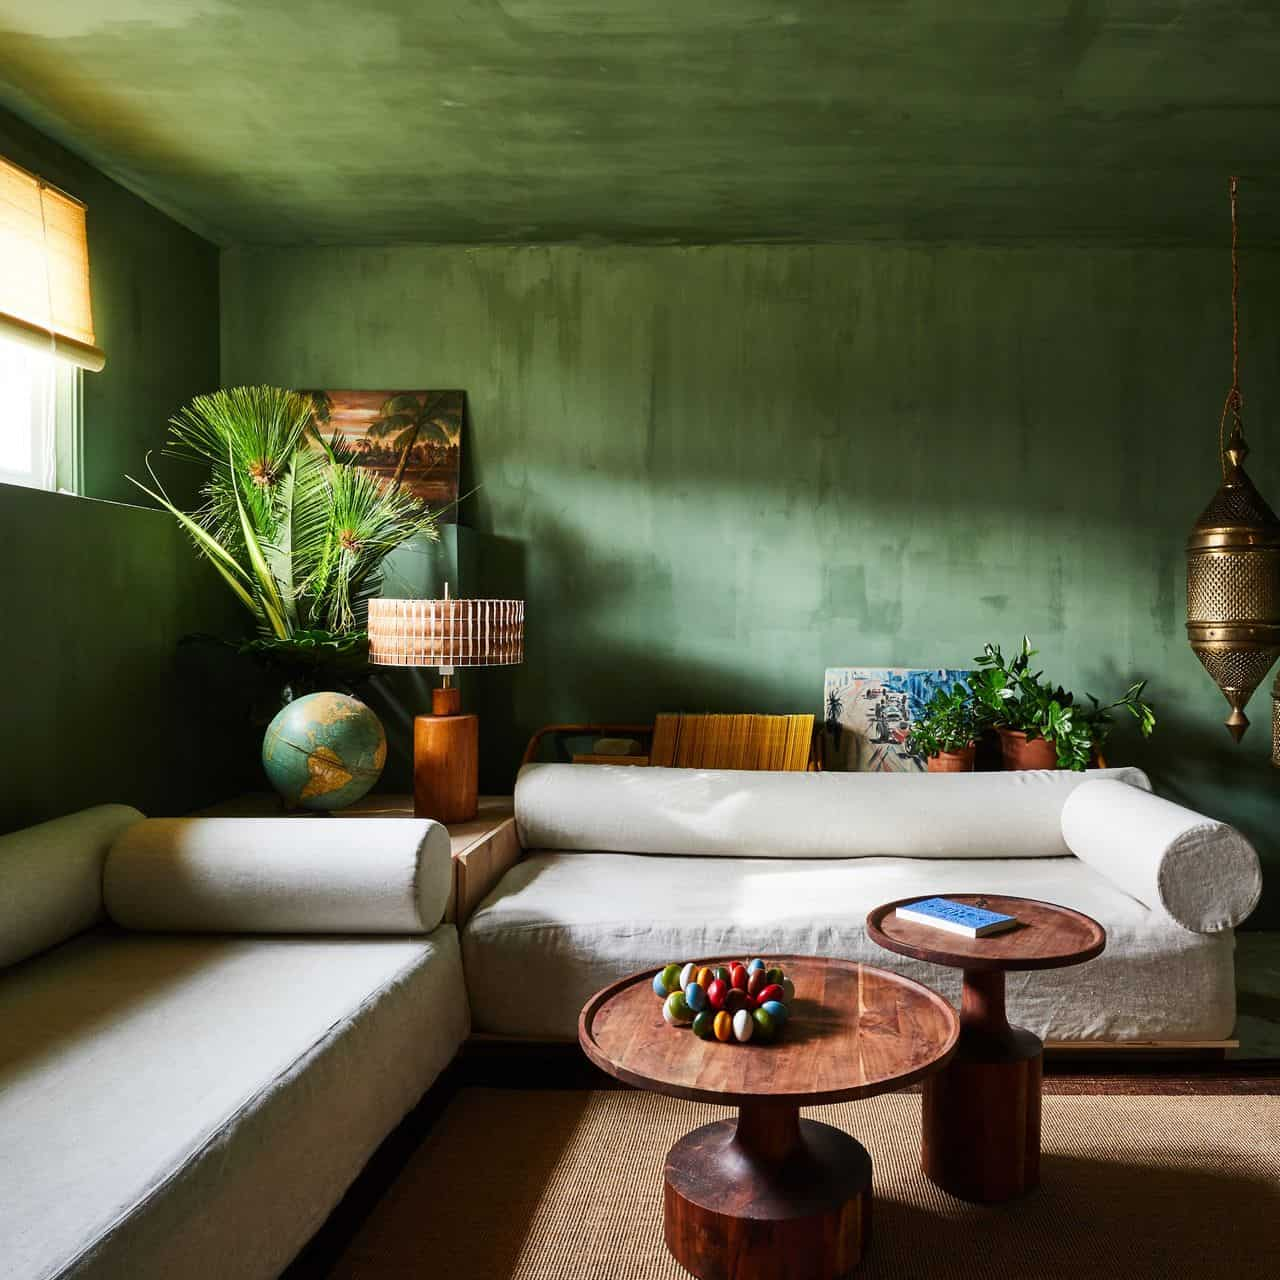 Interior Design Trends 2021: 15 Tips for Ultra-Harmonic Decor